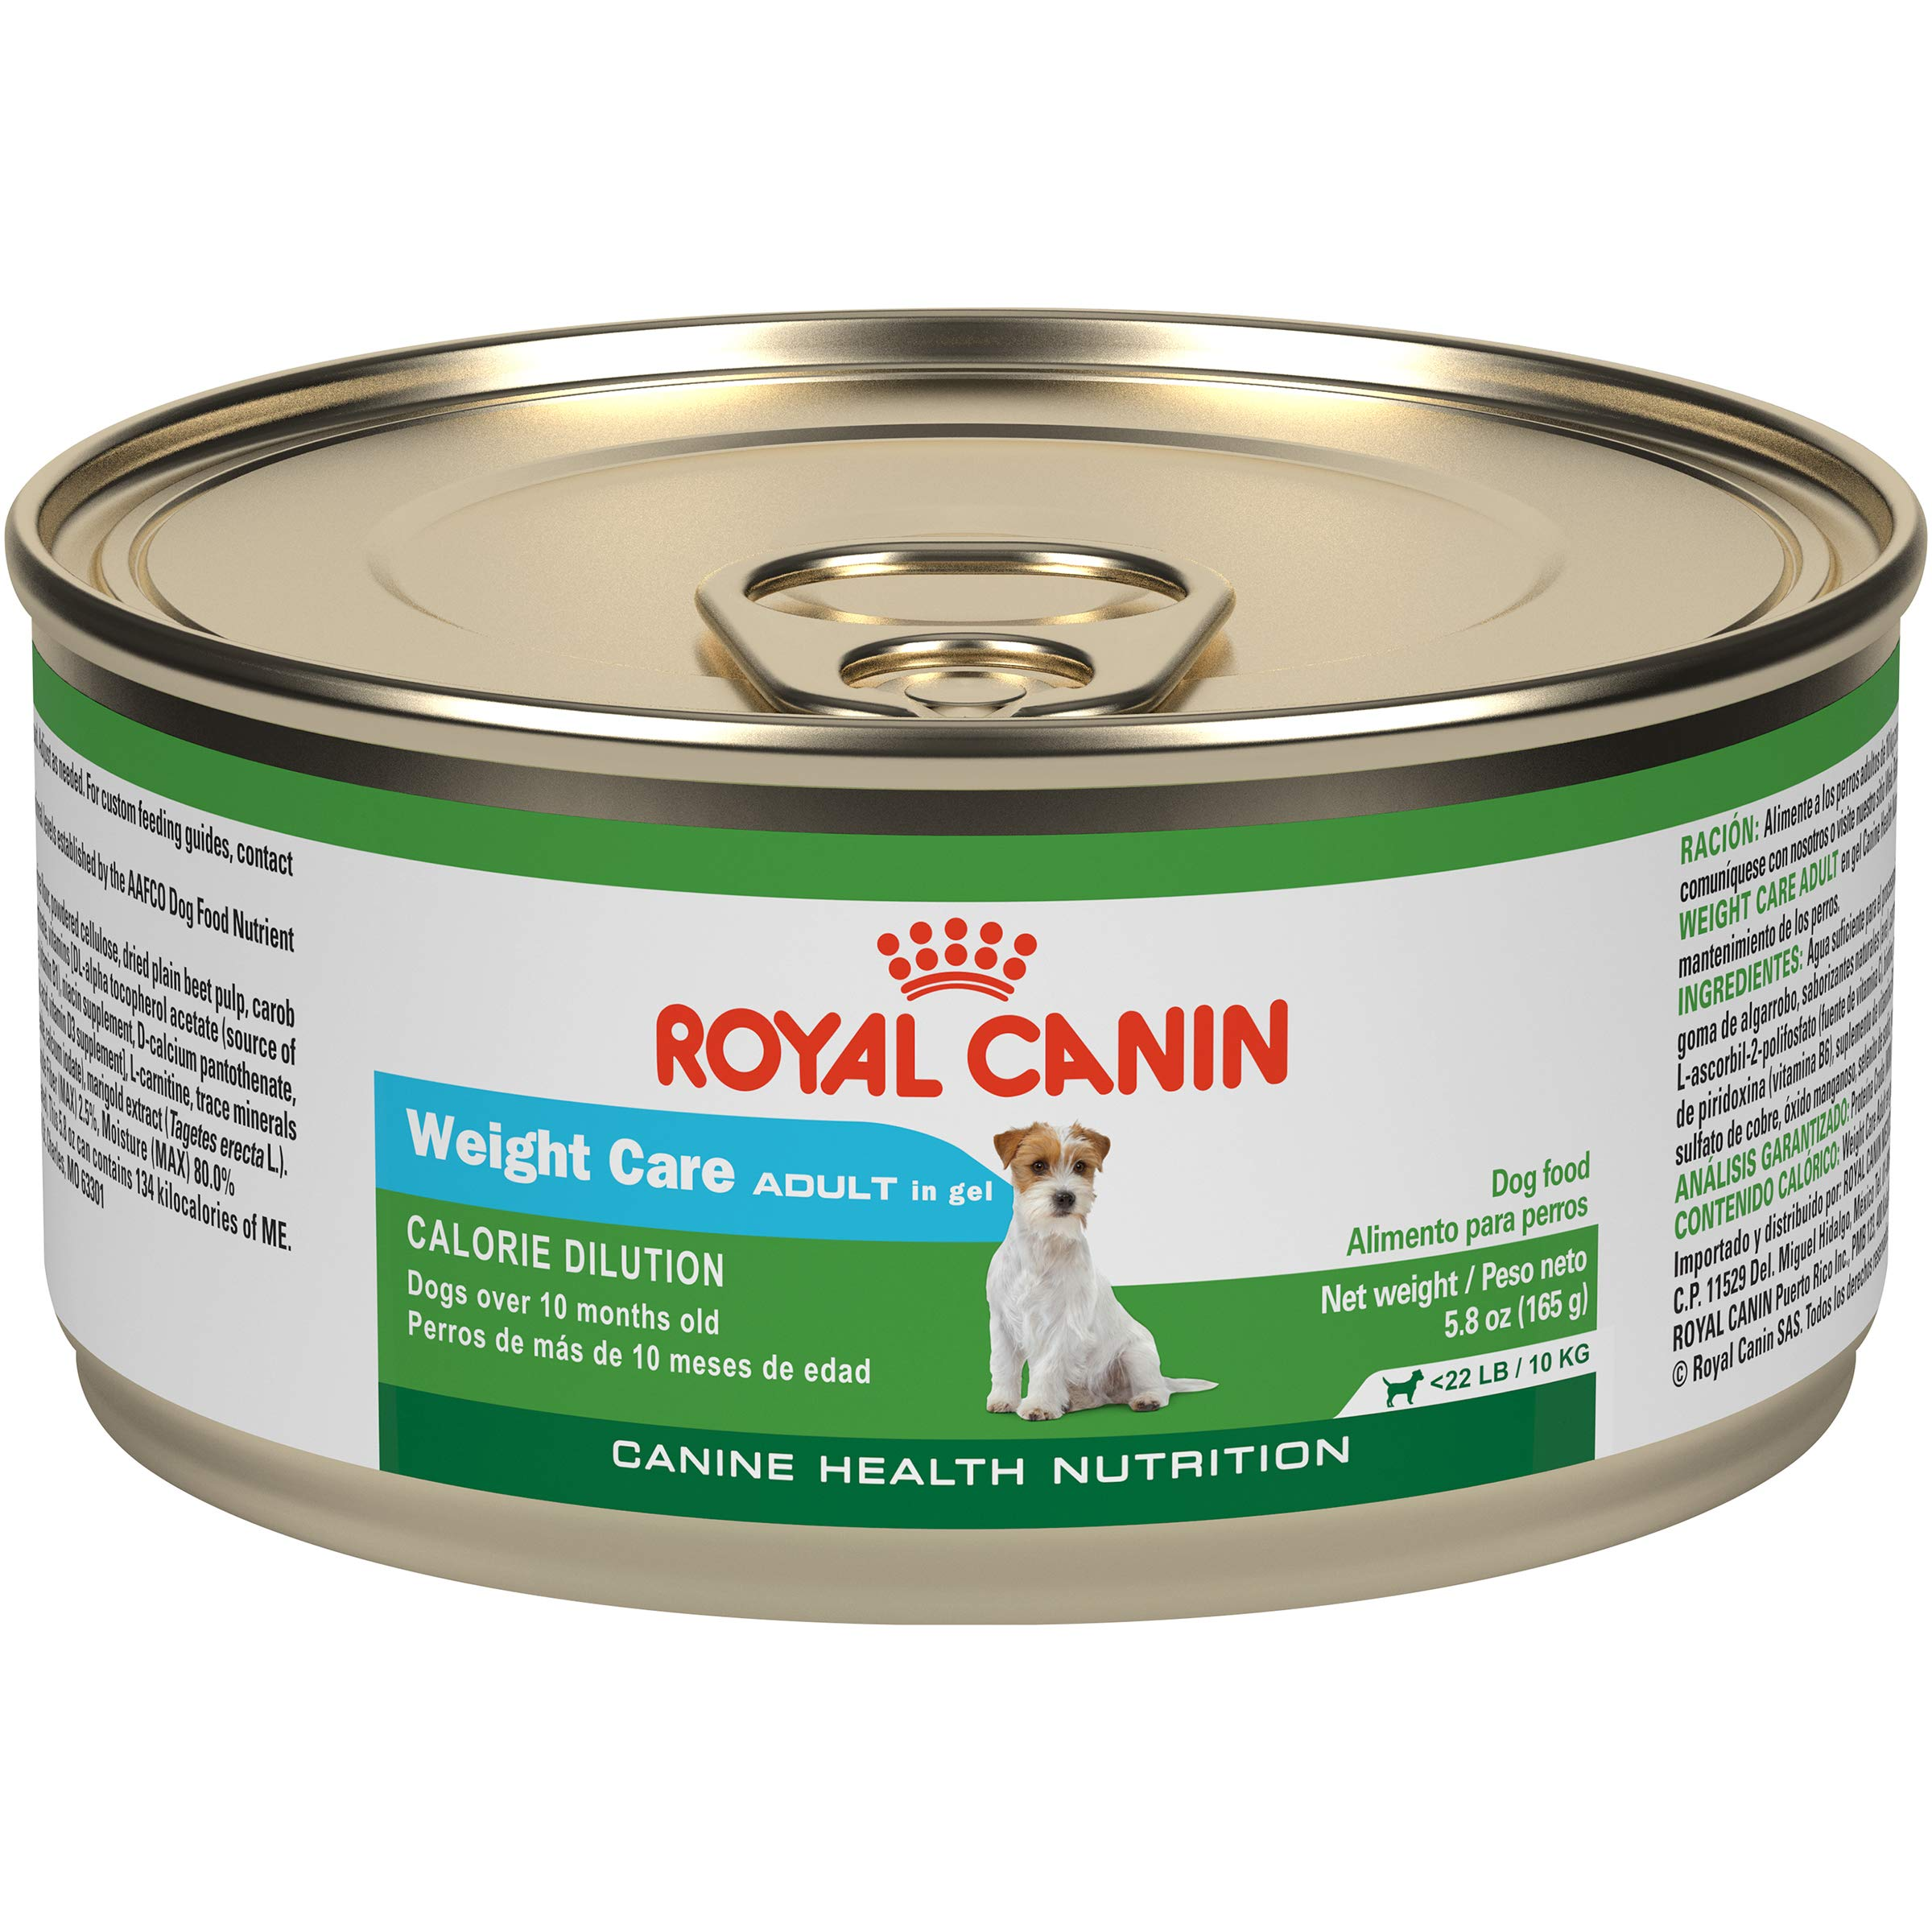 Royal Canin Canine Health Nutrition Adult Weight Care In Gel Canned Dog Food, 5.8 oz, (Pack of 24) by Royal Canin